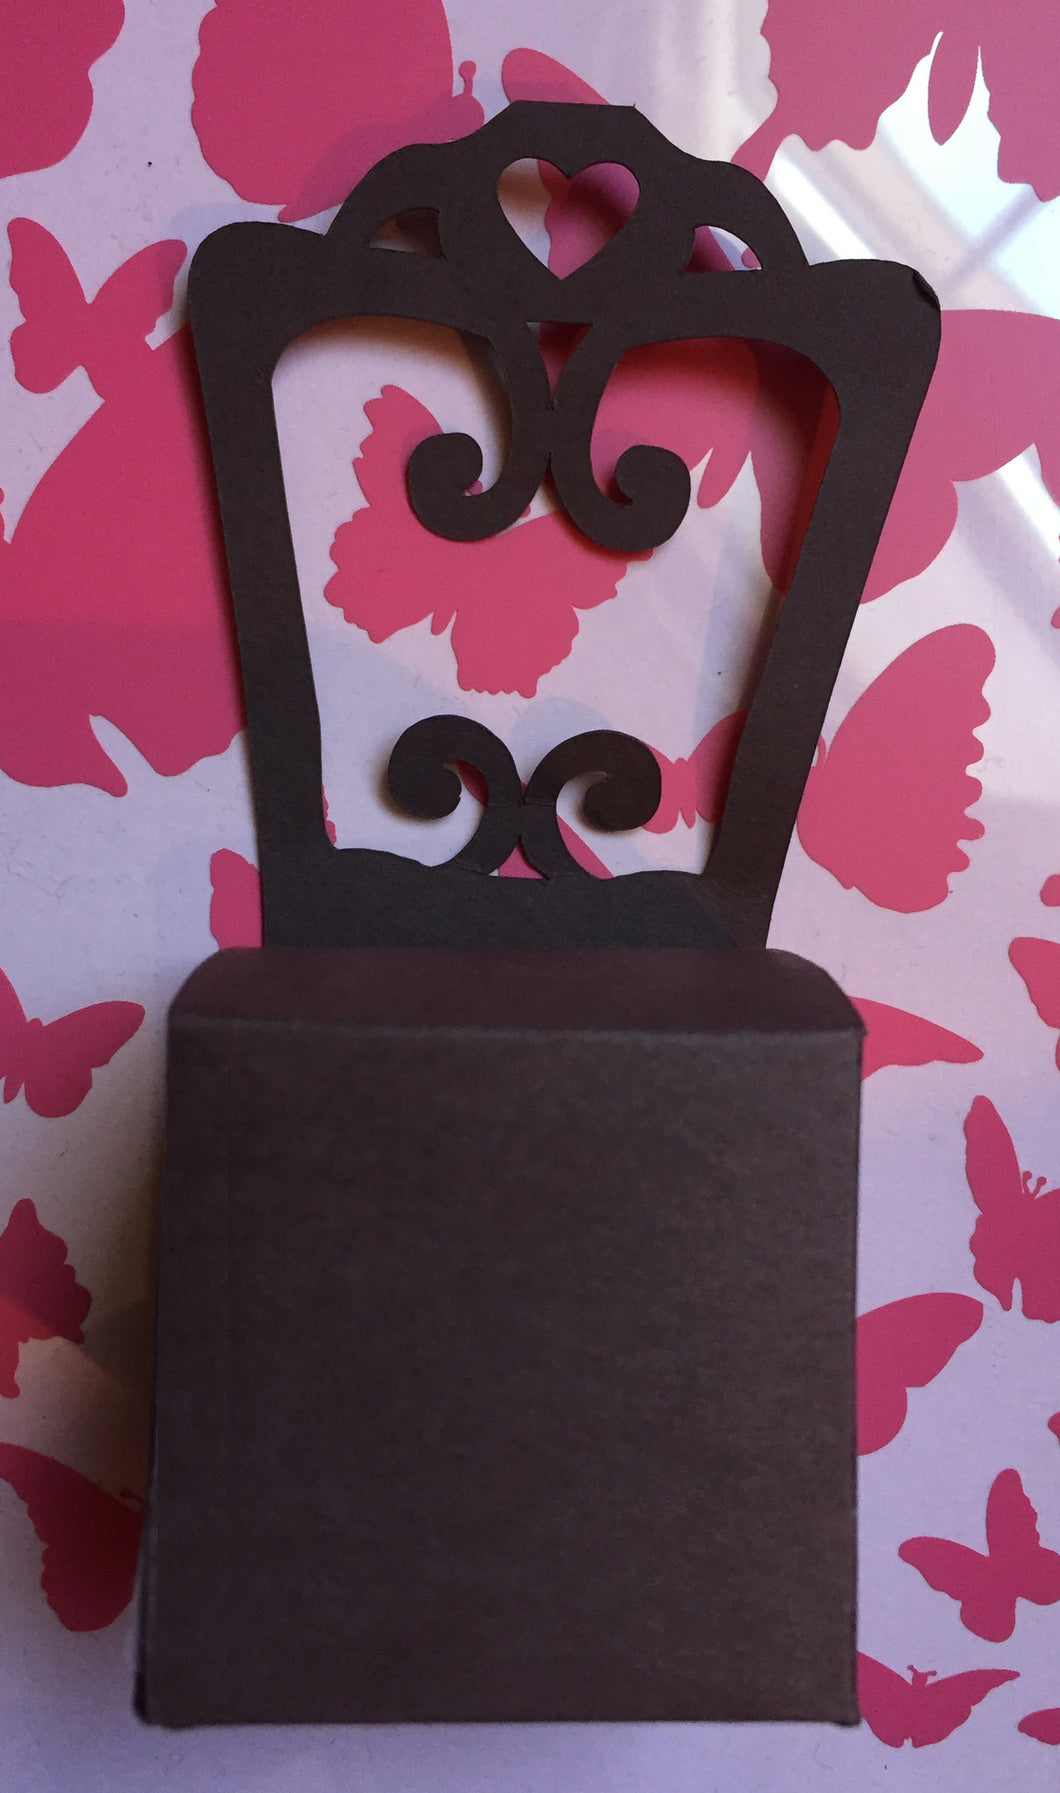 Chair Shaped Gift Box